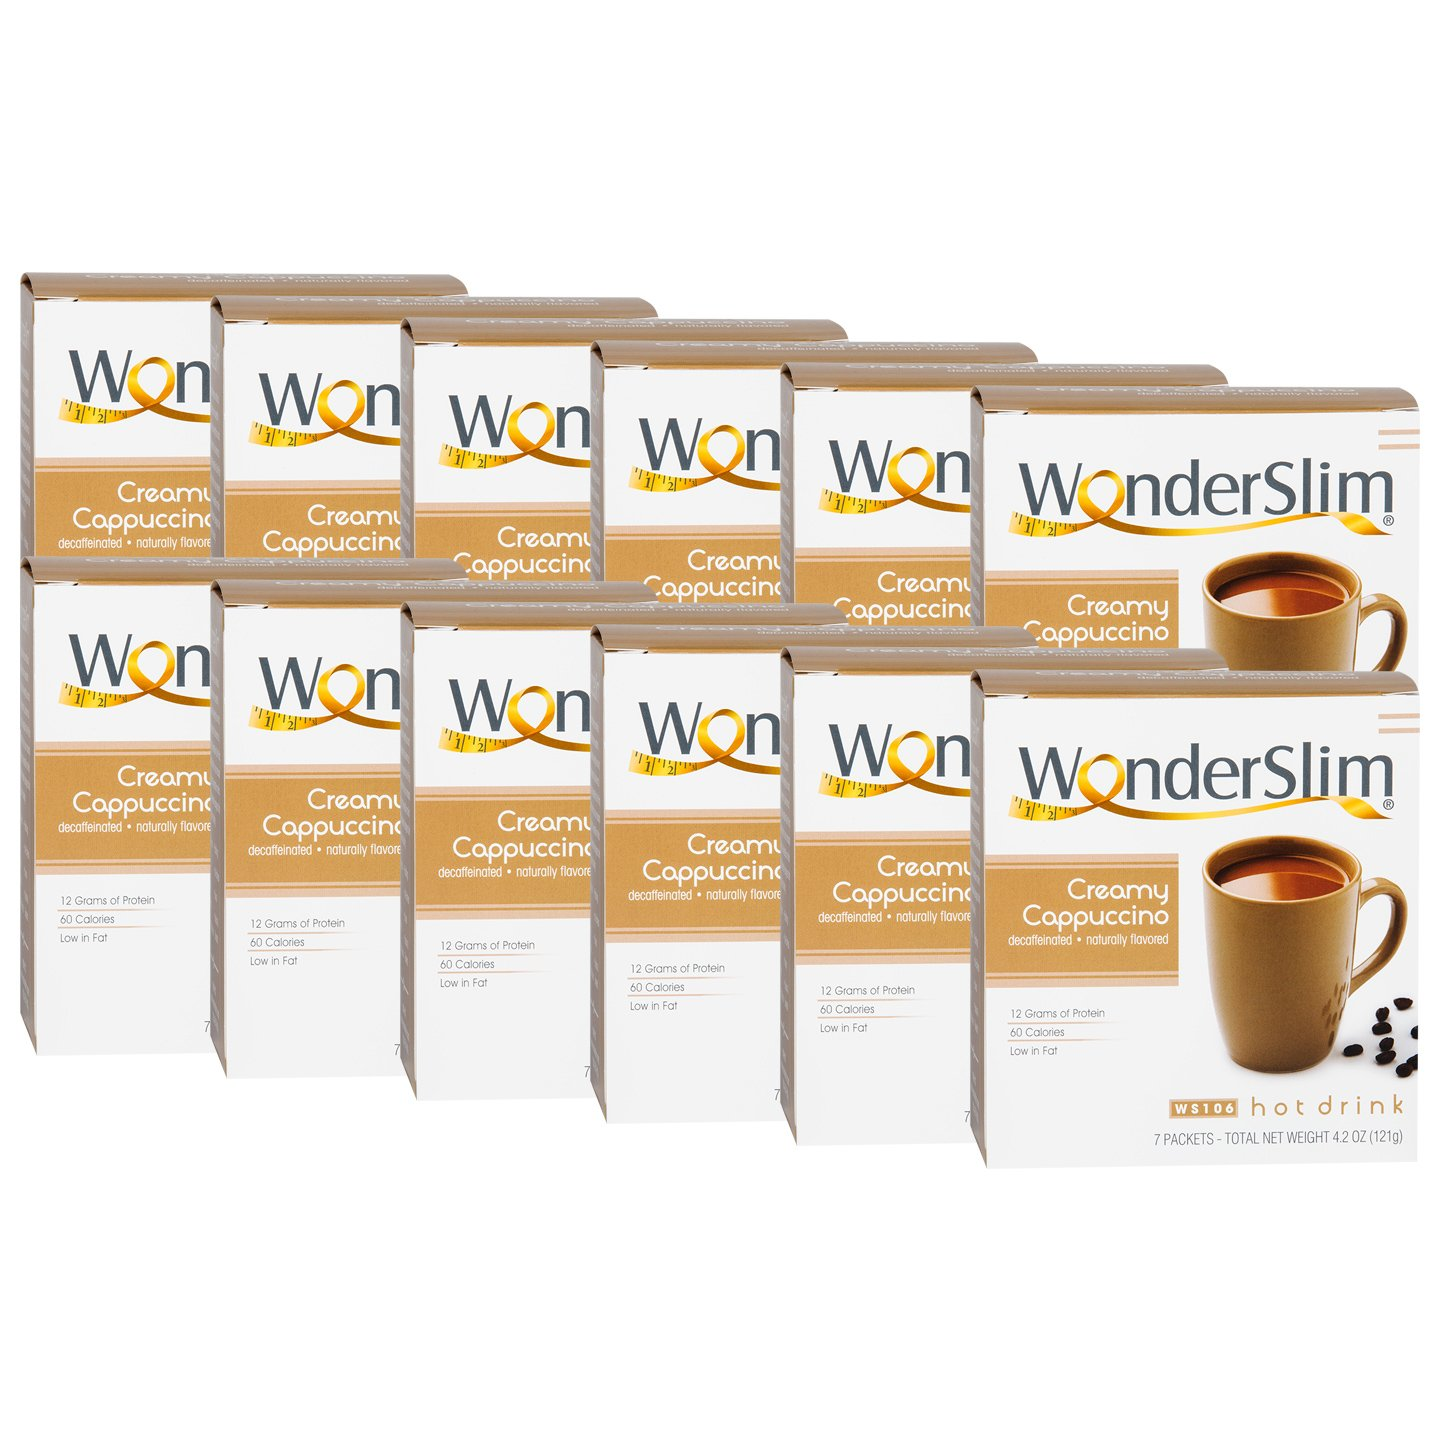 WonderSlim Low-Carb High Protein Diet/Weight Loss Instant Hot Drink Mix - Cappuccino (7 ct) 12 Box Value Pack (Save 15%) - Low Carb, Low Fat, Gluten Free by WonderSlim (Image #1)